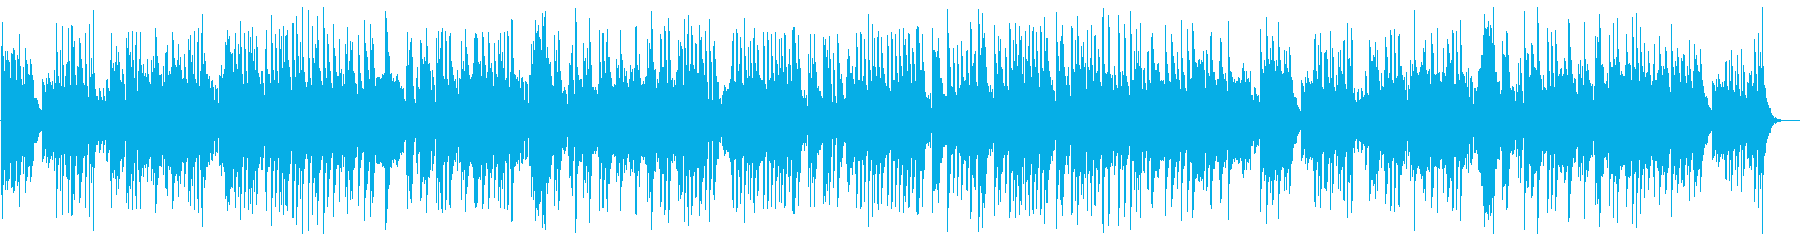 A lovely and light classical piano sound's reproduced waveform